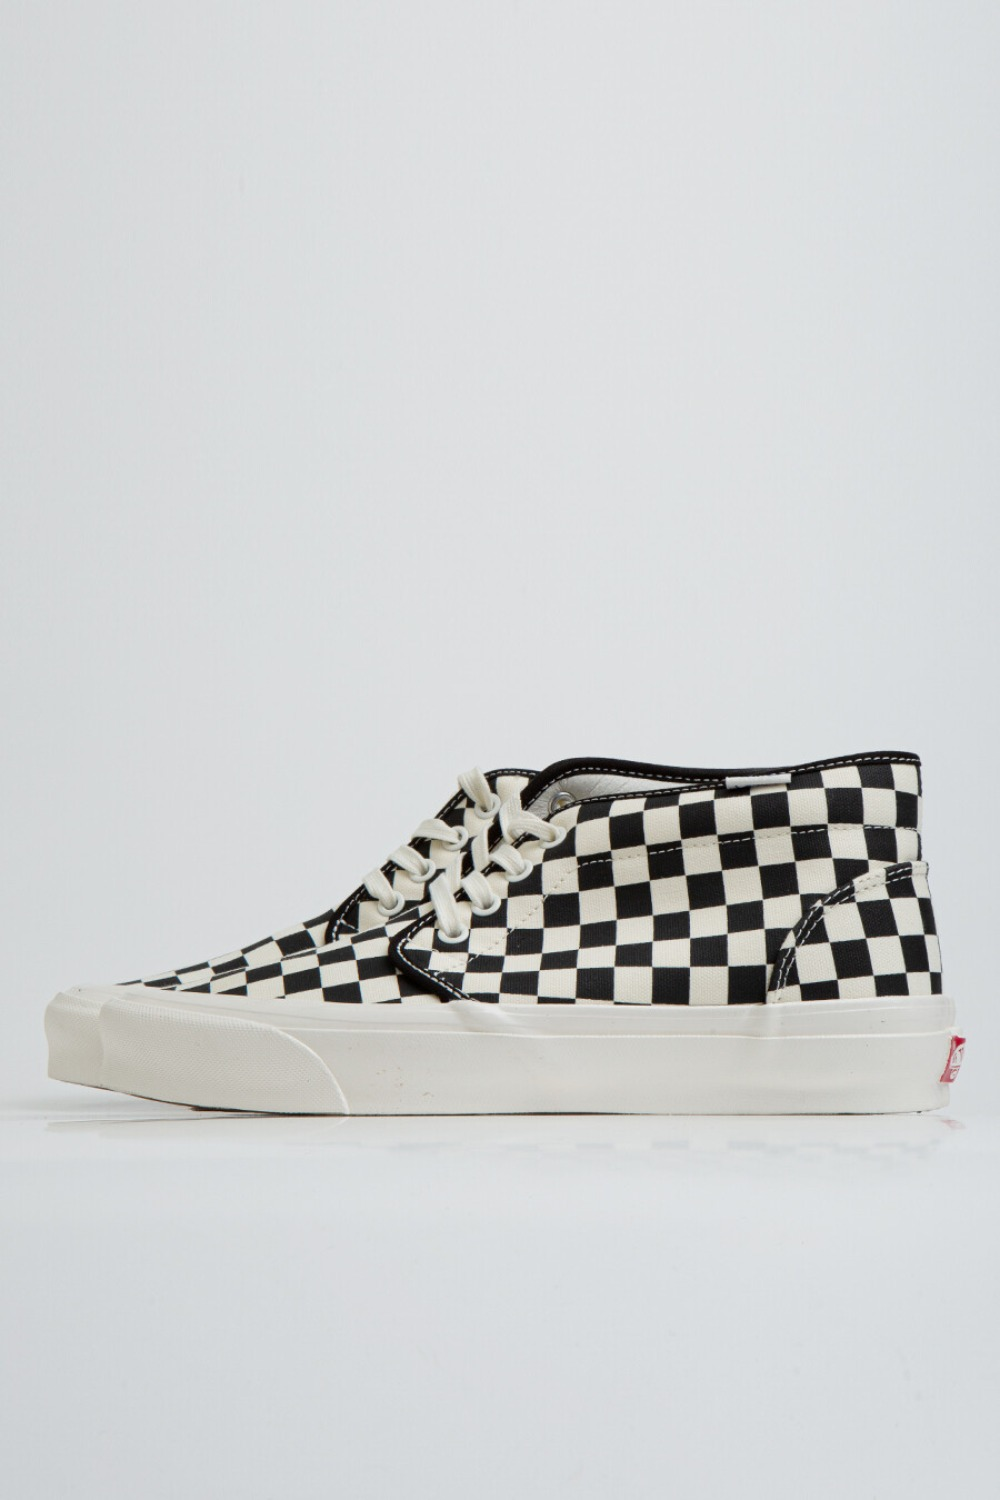 OG CHUKKA LX(CANVAS/CHECKERBORAD) BLACK/WHITE